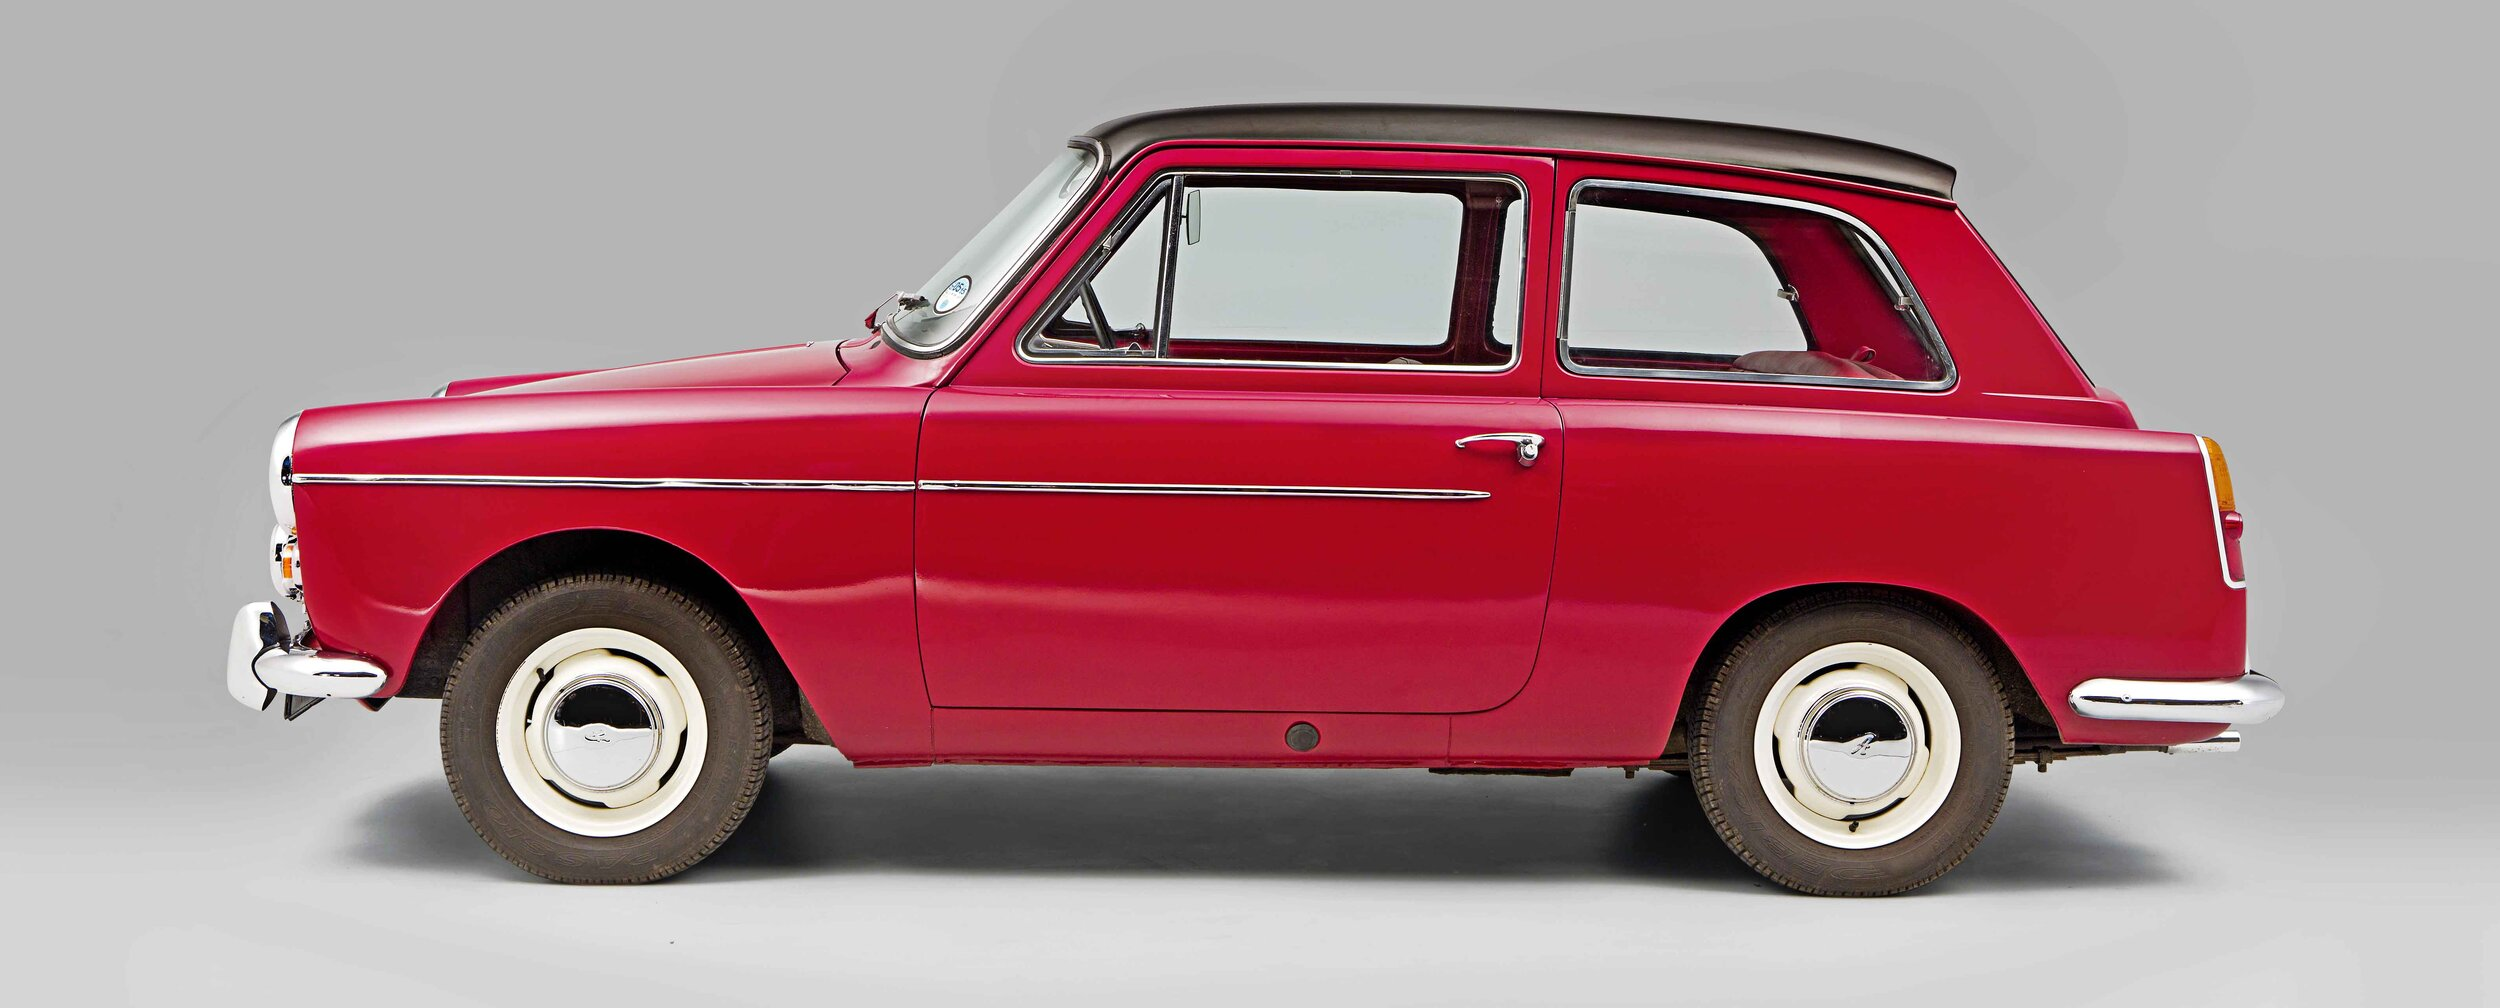 Few family cars of the Sixties have as much charm as the A40, in part thanks to its arrival in the late 1950s. That styling was courtesy of Pininfarina; this was the first BMC model to be designed by the legendary styling house. The A40 was also the world's first mass-produced hatchback, which offers even more usability than the regular saloon, although both cars share the same silhouette. The A40 shares many mechanical components with the A30/A35, MG Midget and Sprite, as well as engines and gearboxes from the Morris Minor, so parts supply is plentiful. We show you how to buy the best in the new issue of Practical Classics.